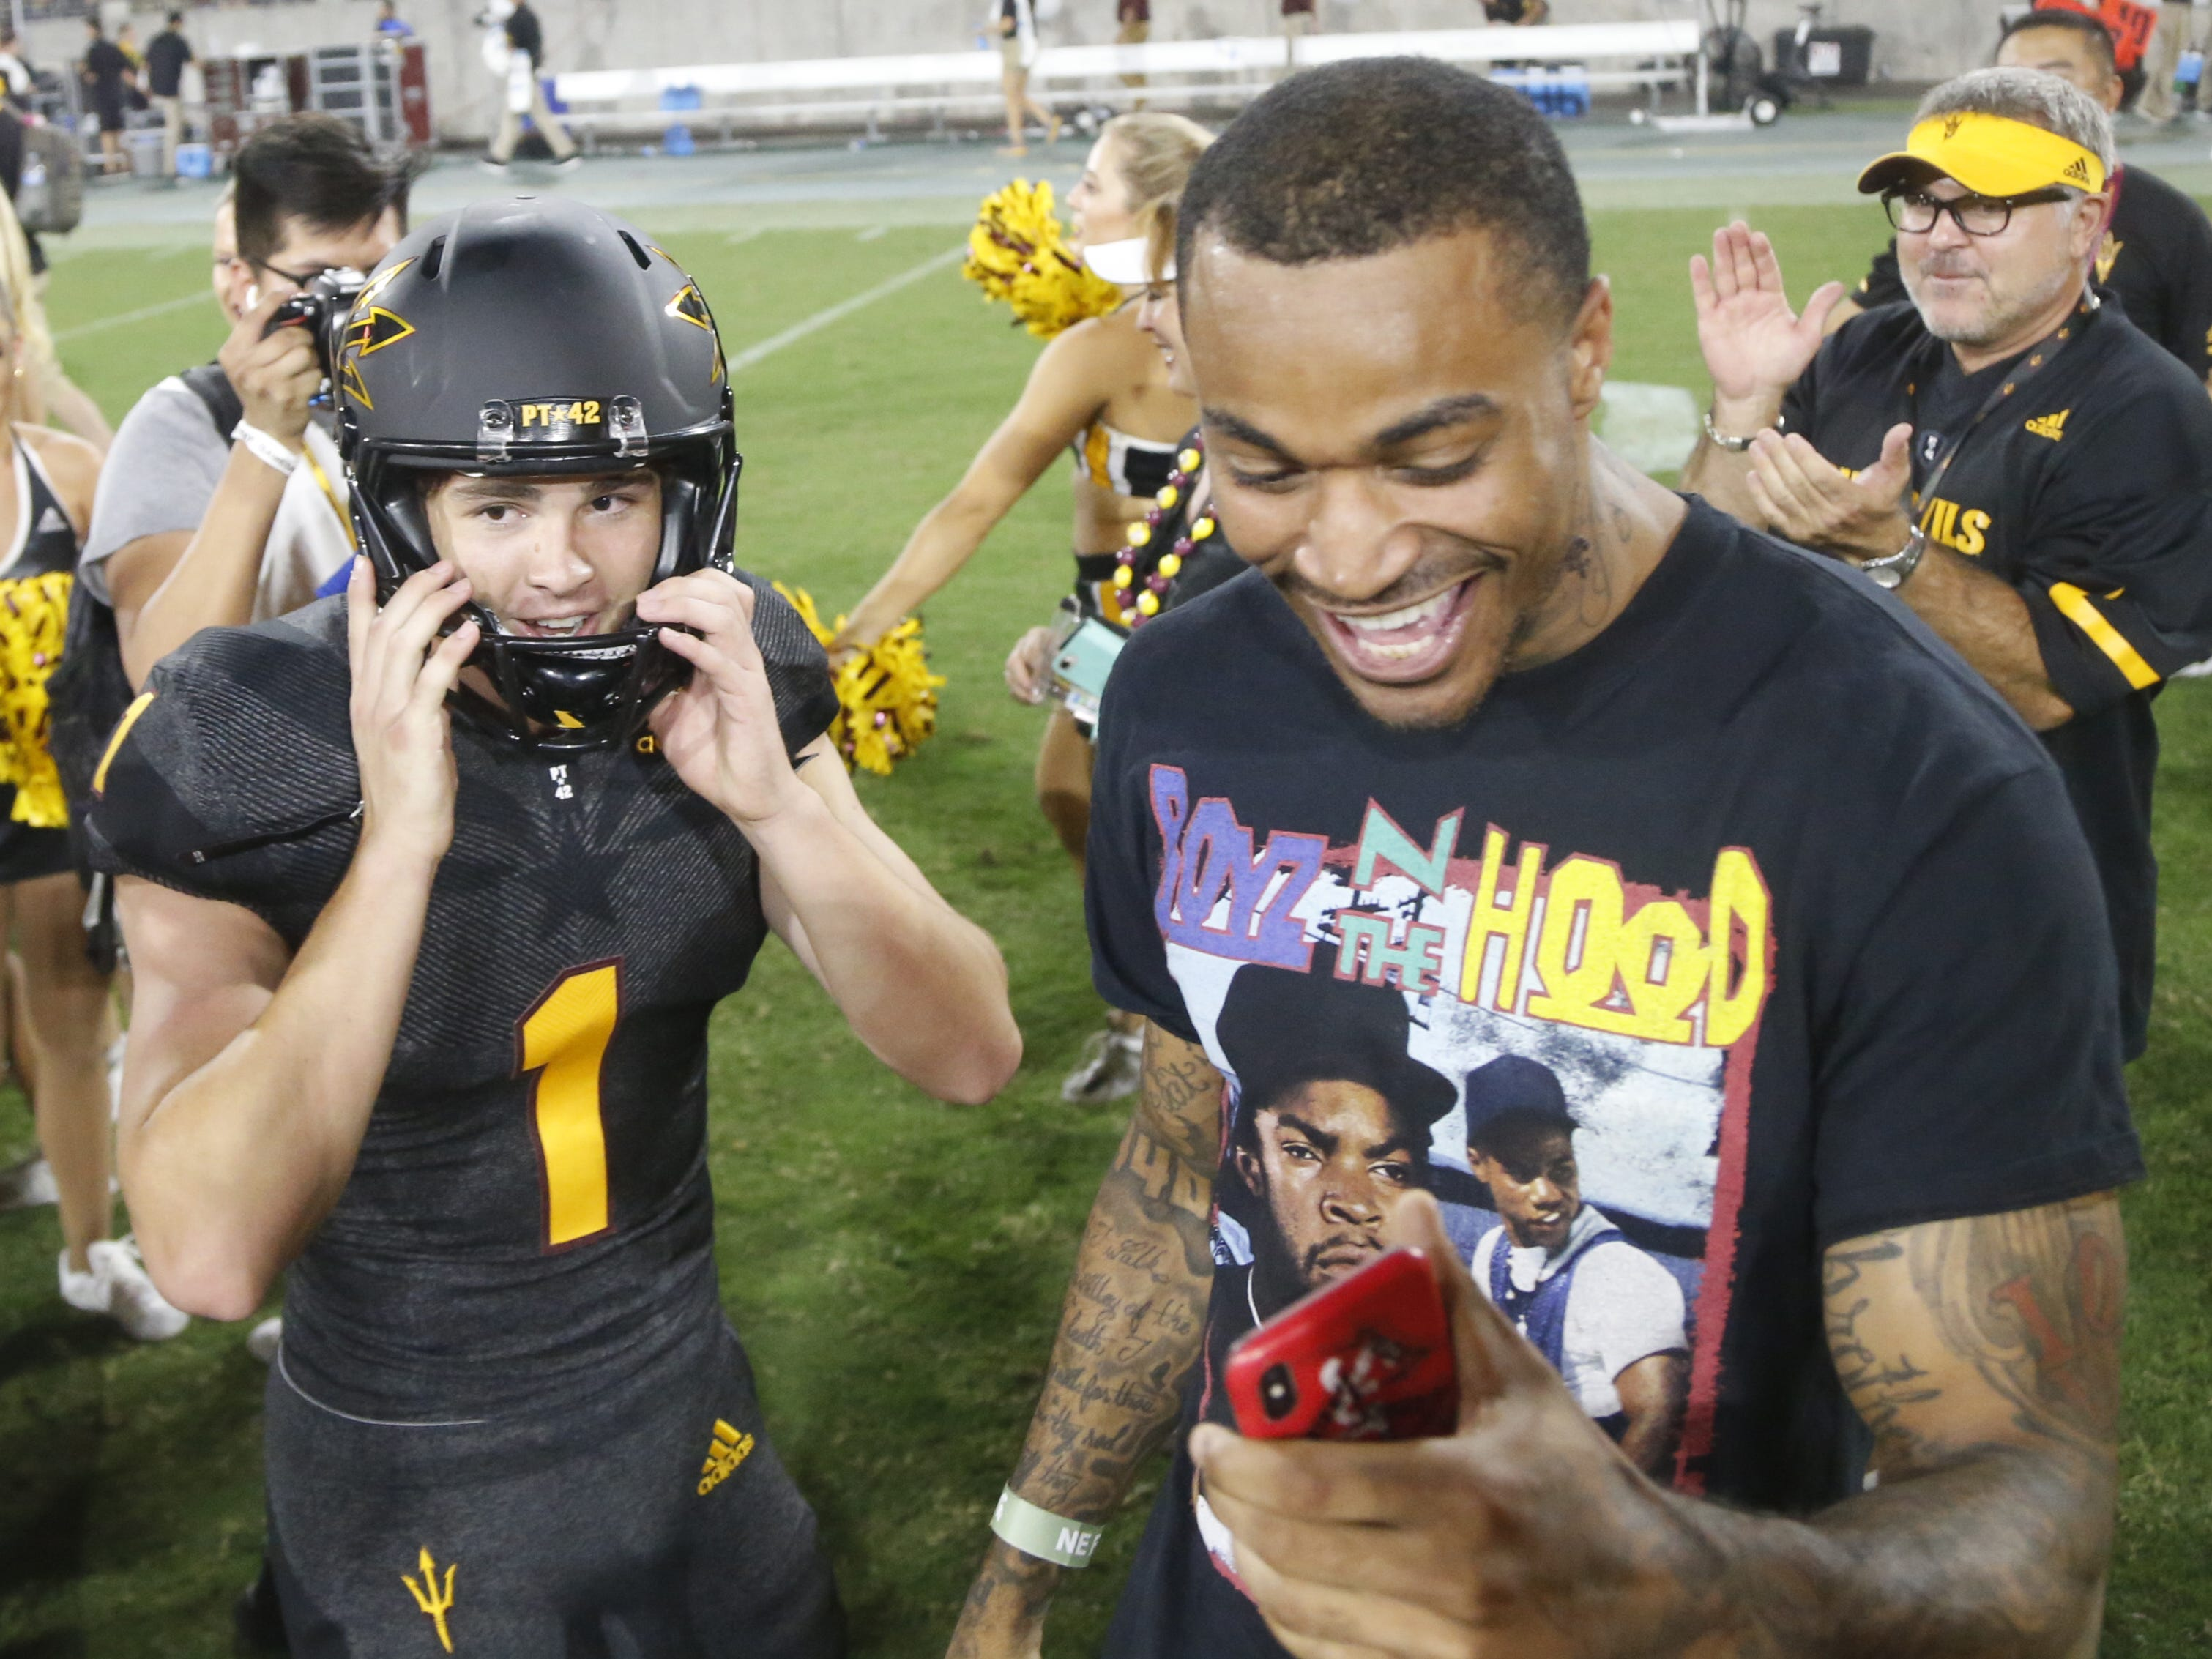 Arizona State Sun Devils kicker Brandon Ruiz (1) celebrates on Jaelen Strong's Instagram story after kicking the game-winning field goal defeating Michigan State 16-13 at Sun Devil Stadium in Tempe, Ariz. on Sept. 8, 2018.